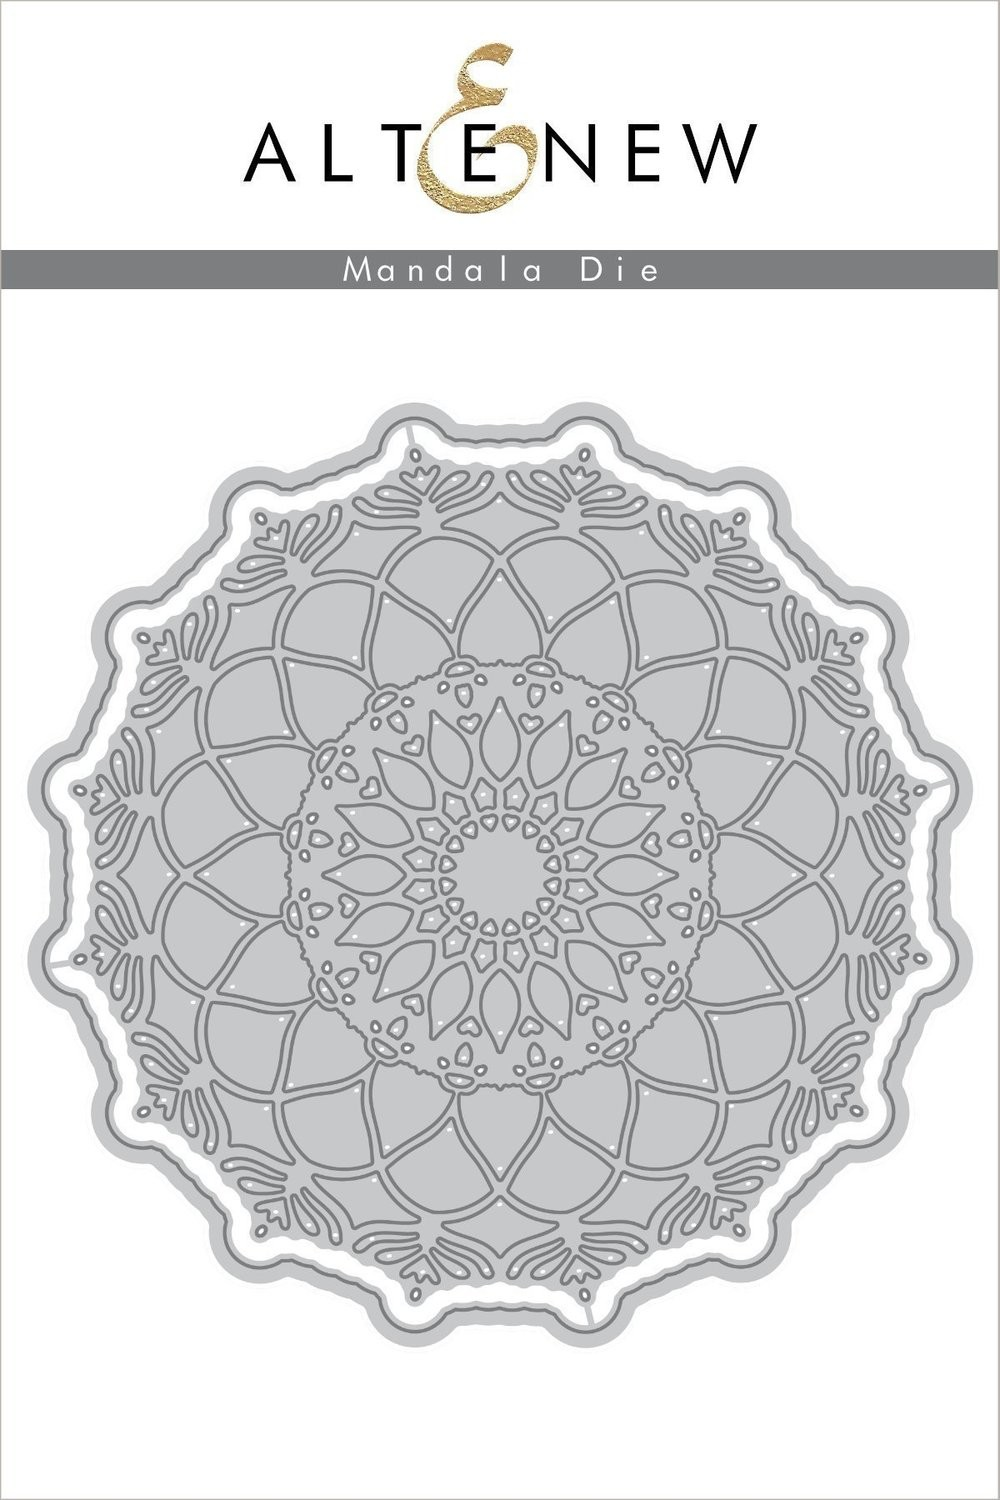 Altenew MANDALA Die Set